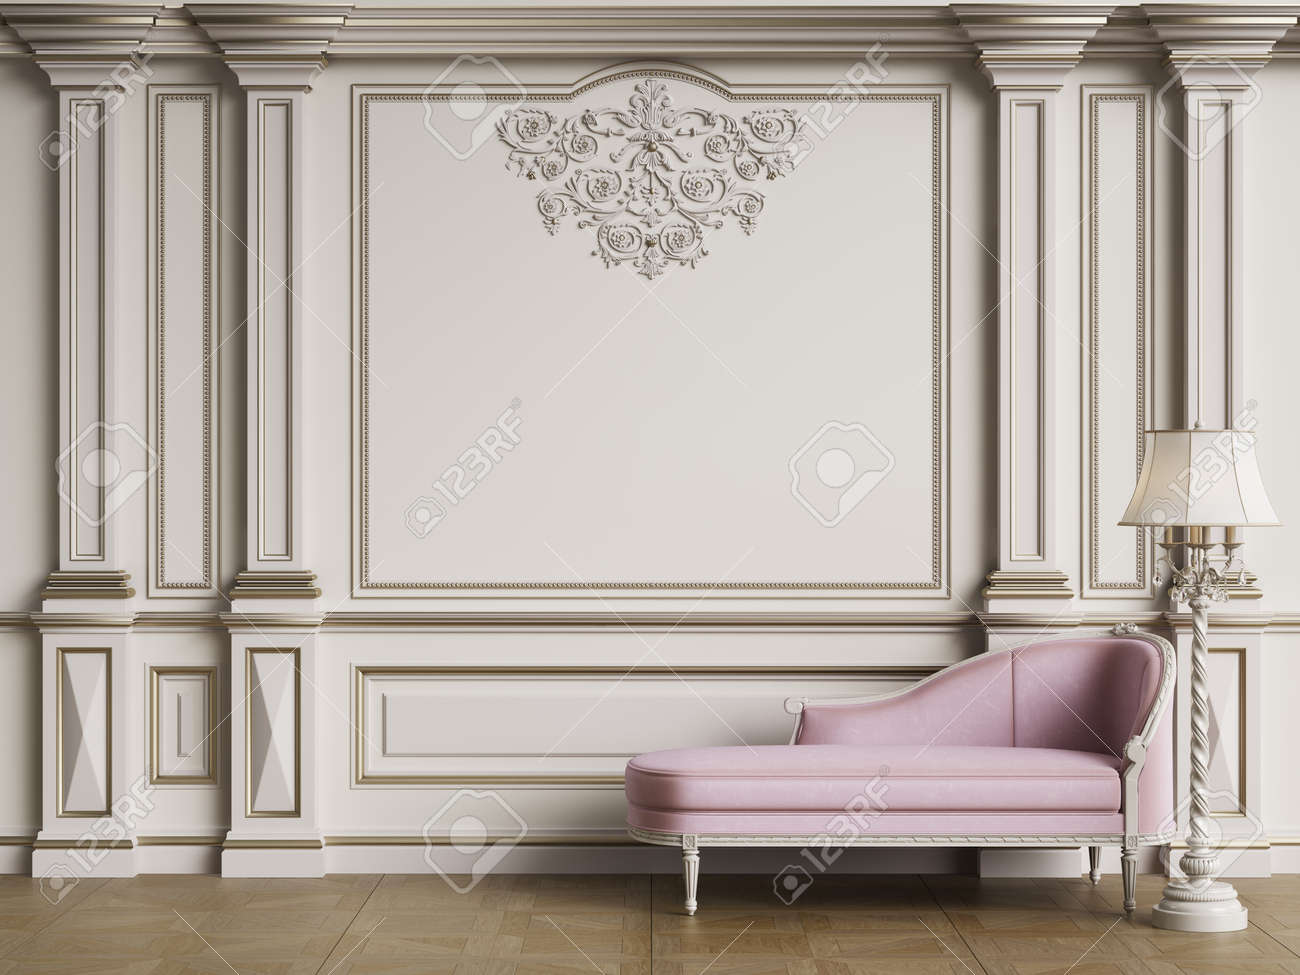 Classic furniture in classic interior with copy space.Walls with ornated moldings.Floor parquet.Digital Illustration.3d rendering - 155943514